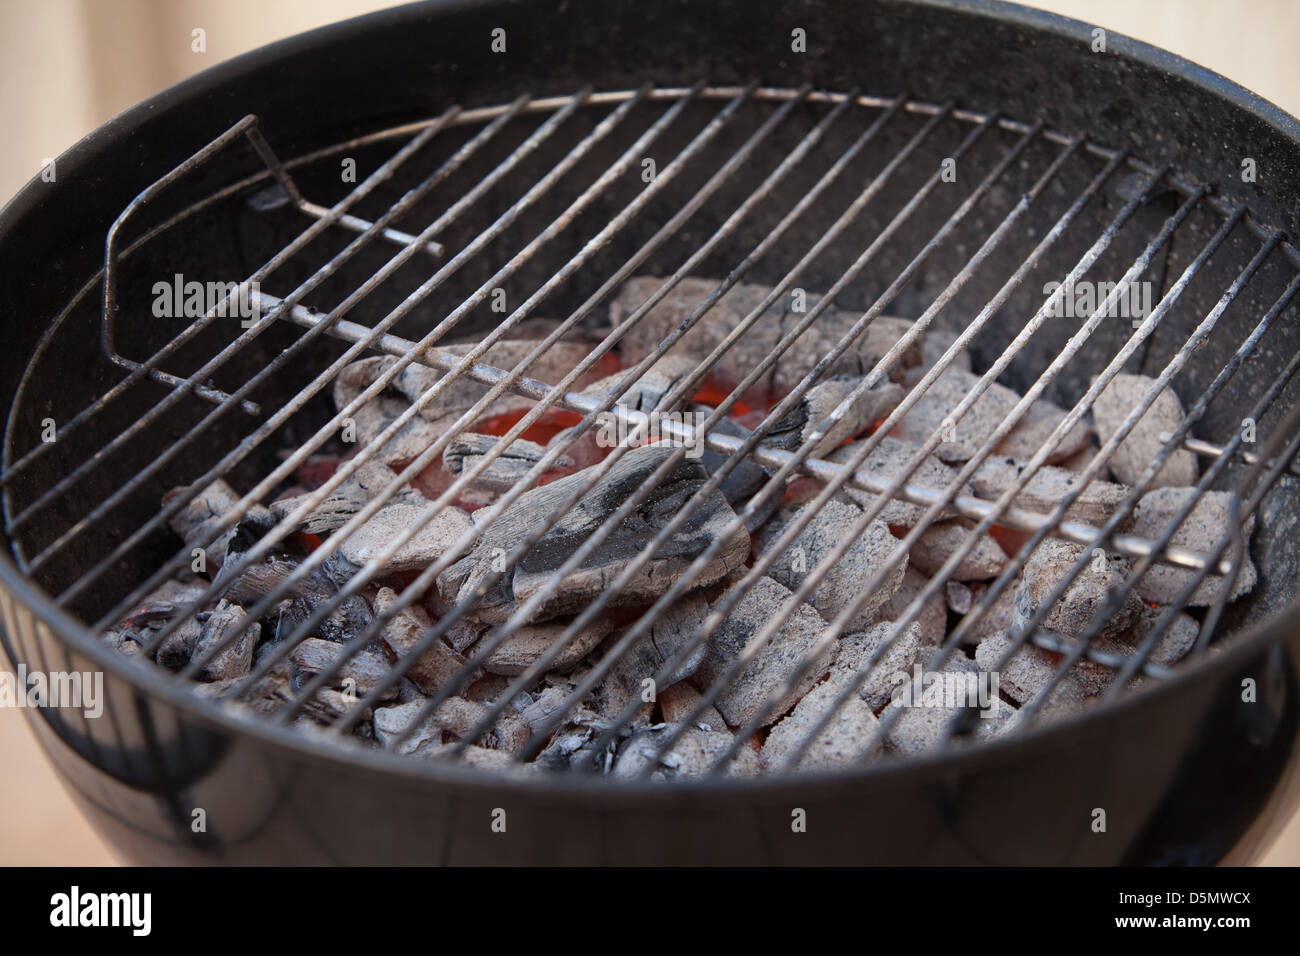 Hot Coal Bbq Grill Cooking Stock Photo Alamy